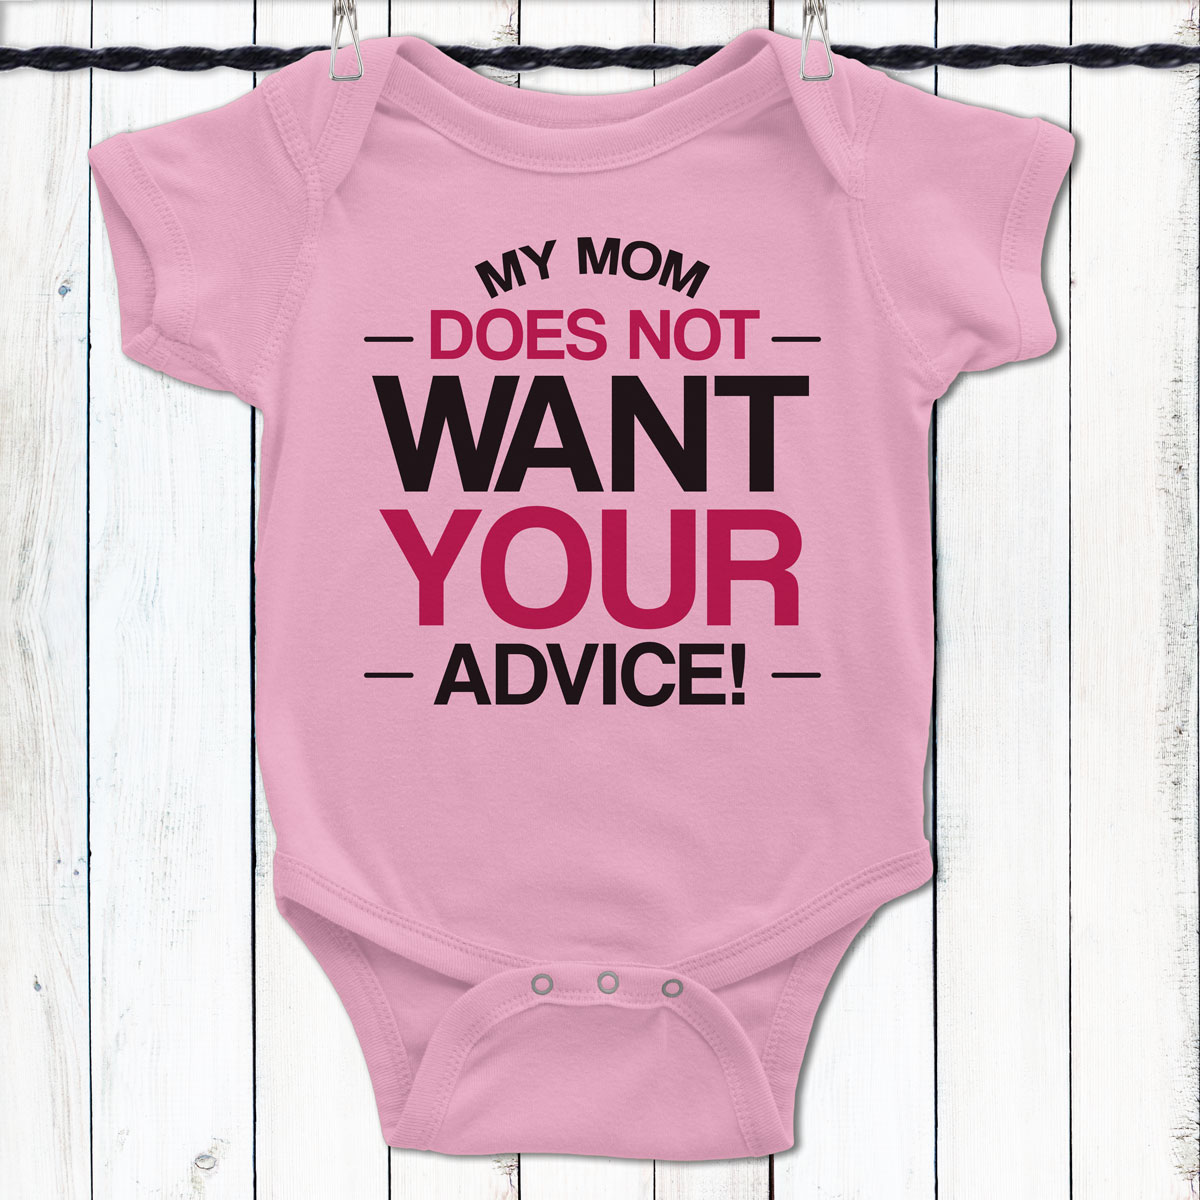 d26e9547e My Mom Does Not Want Your Advice Baby Shirt Pink